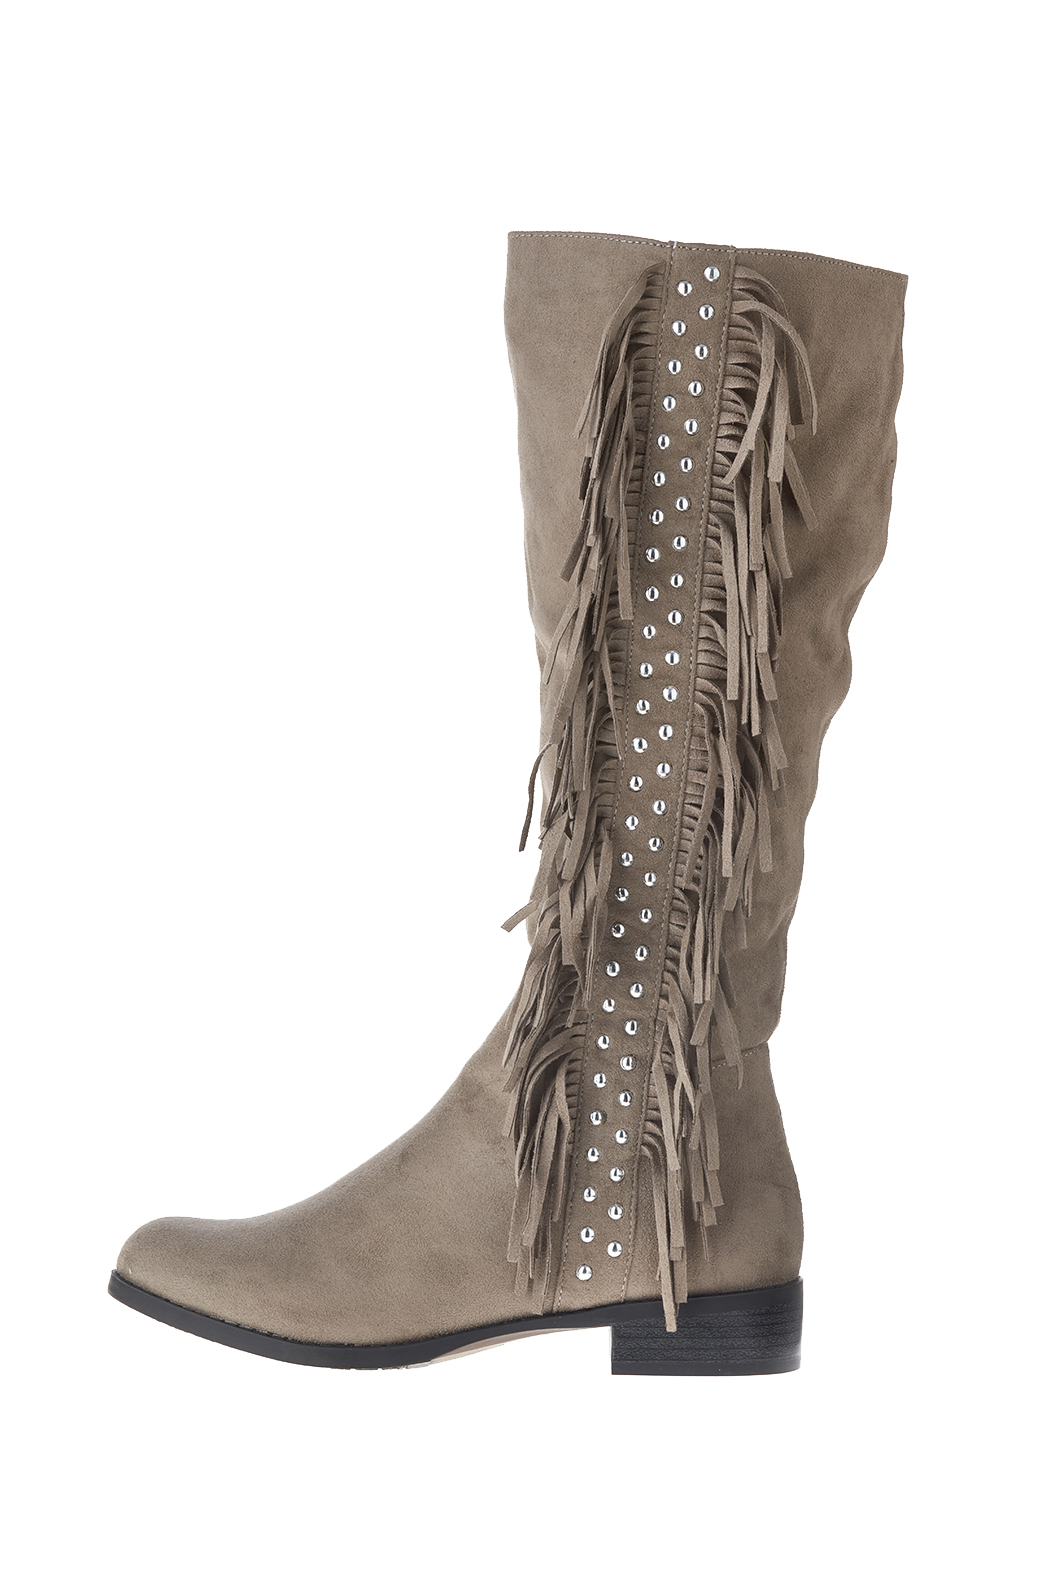 Qupid Suede Fringe Boots from Idaho by Muse Boutique — Shoptiques